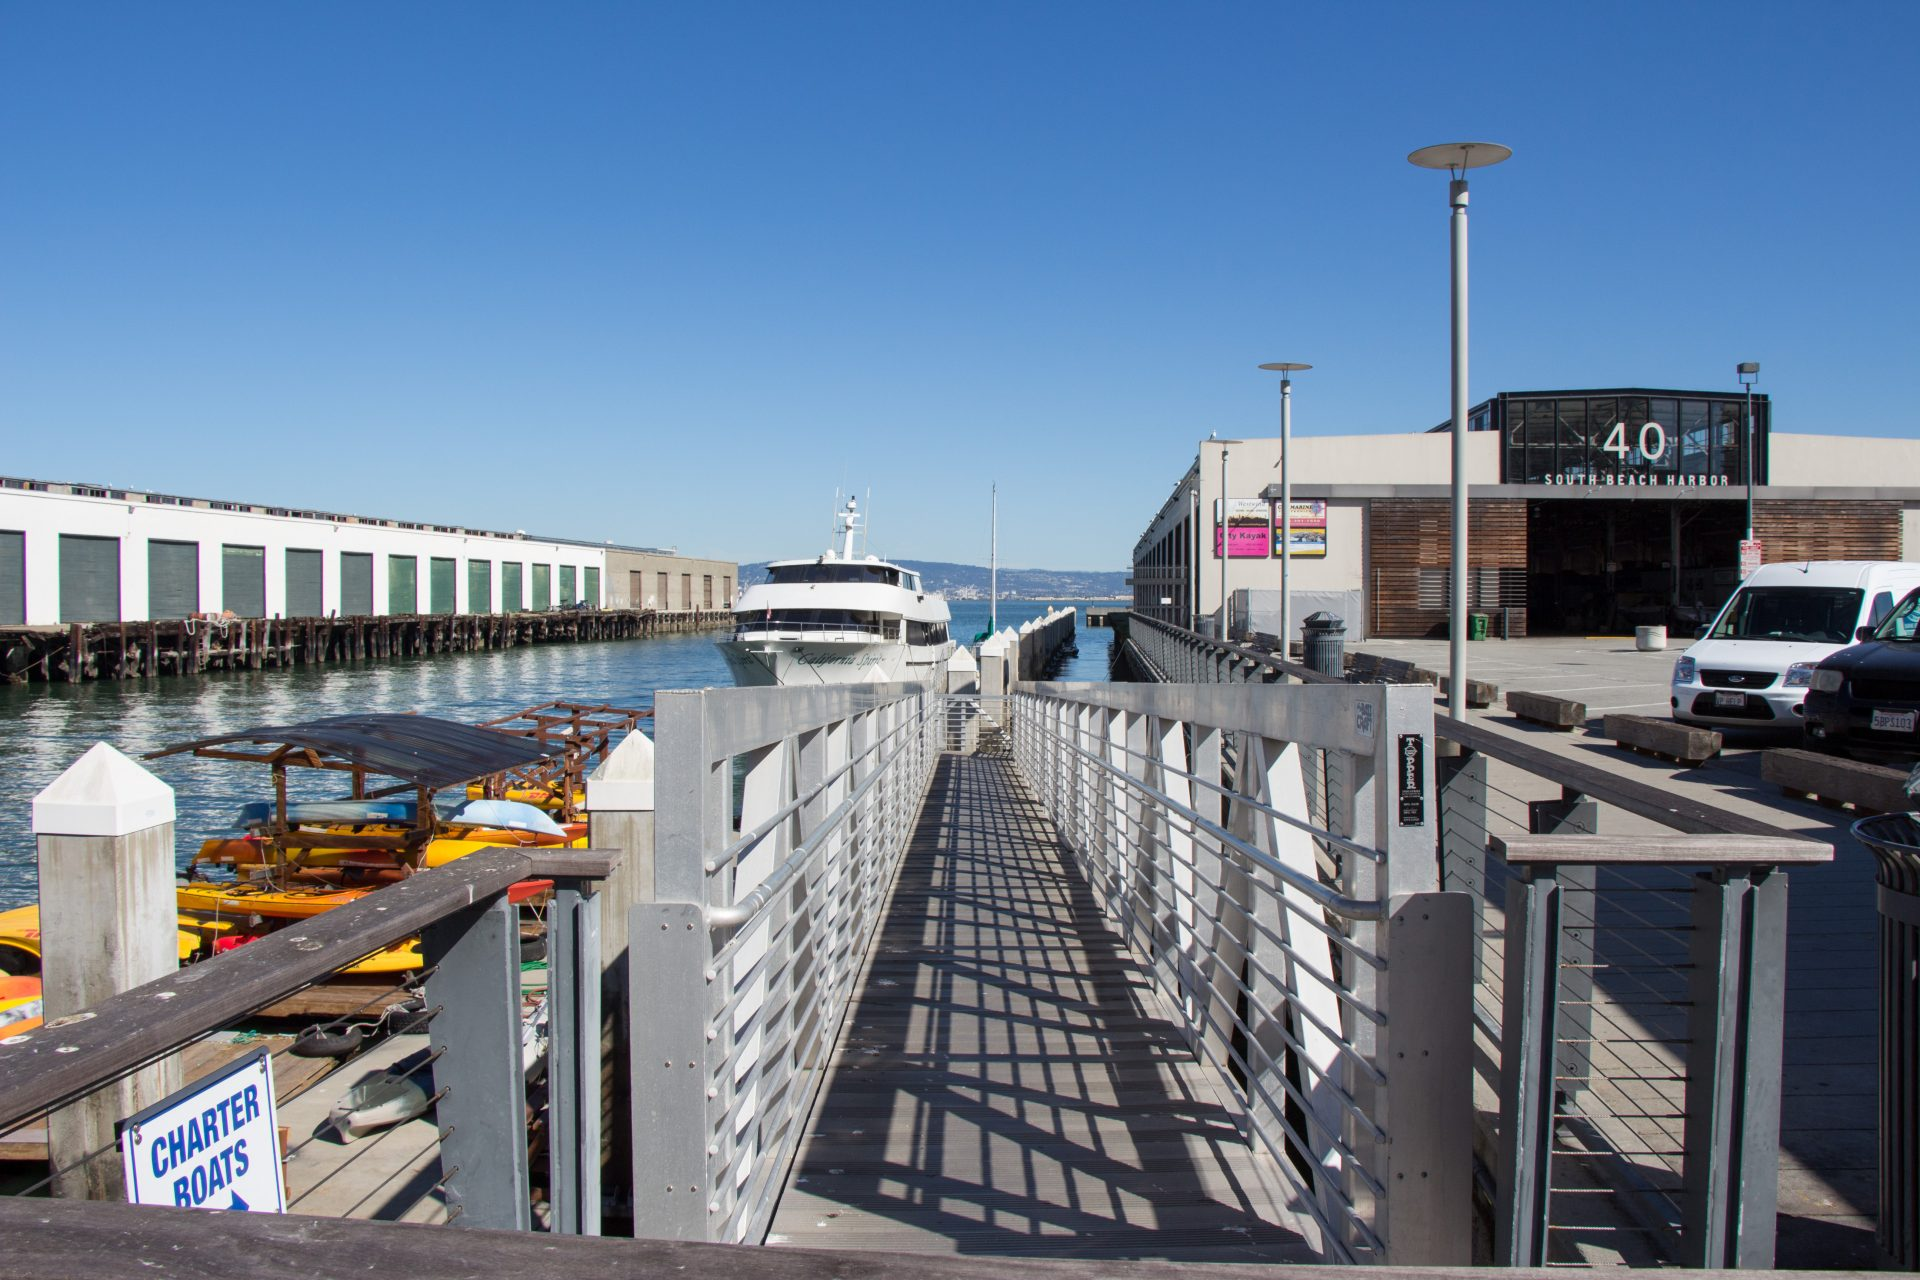 Long narrow walkway with kayaks below on left and large yacht in distance. Pier 40 sign and warehouse on right